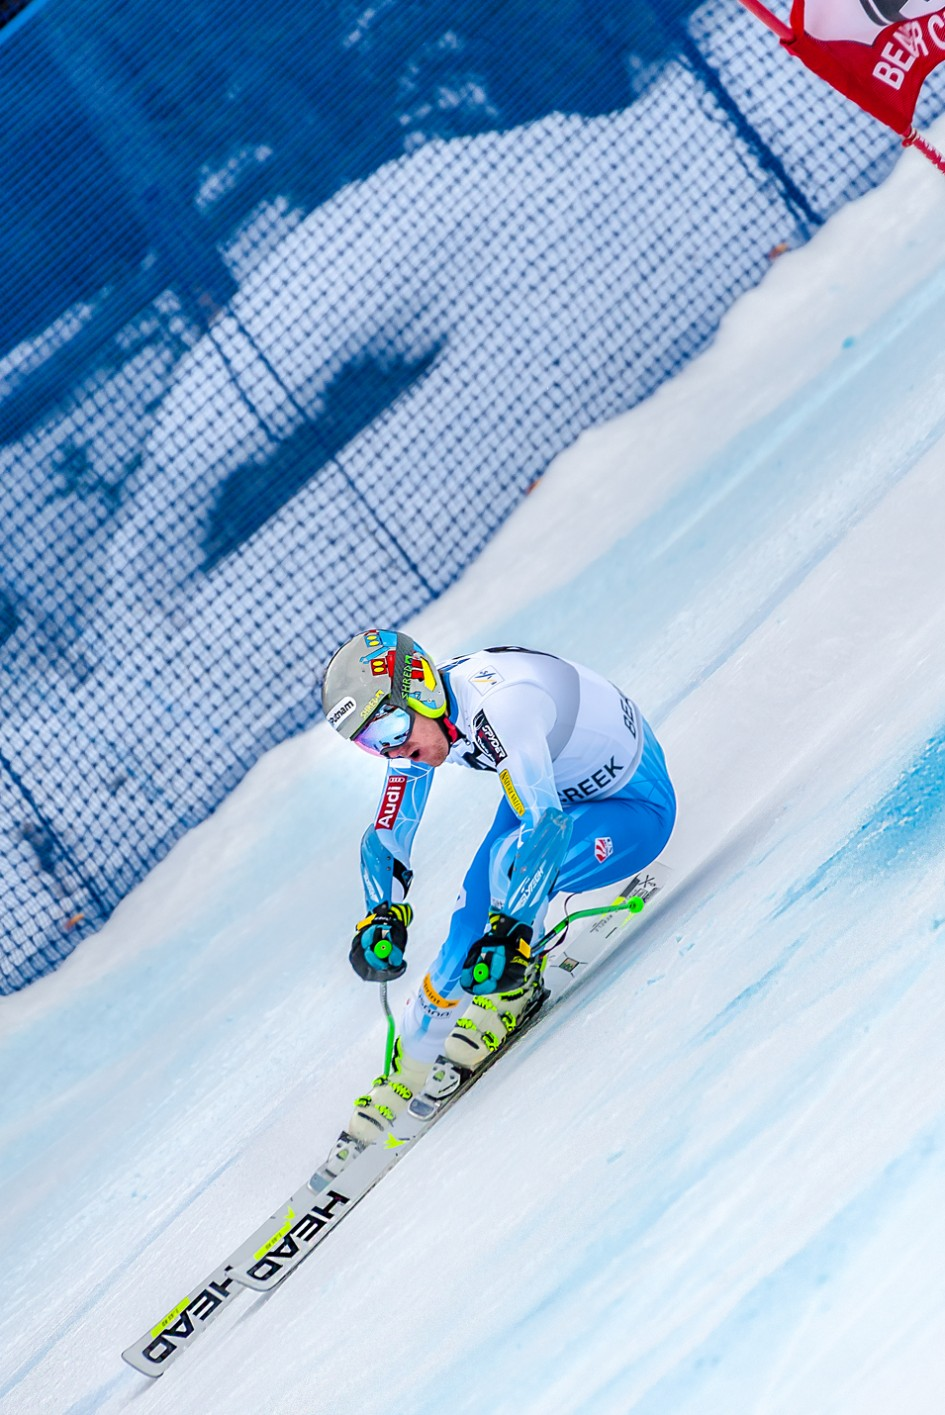 Ted Ligety 2014 Audi FIS Ski World Cup Giant Slalom Winner Image